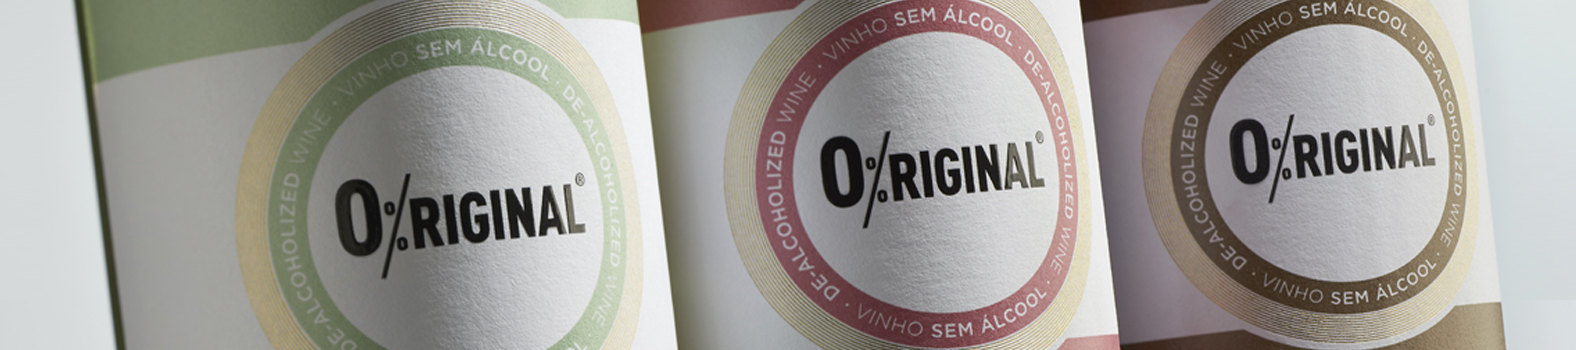 O%riginal is the new José Maria da Fonseca's brand of de-alcoholised wines